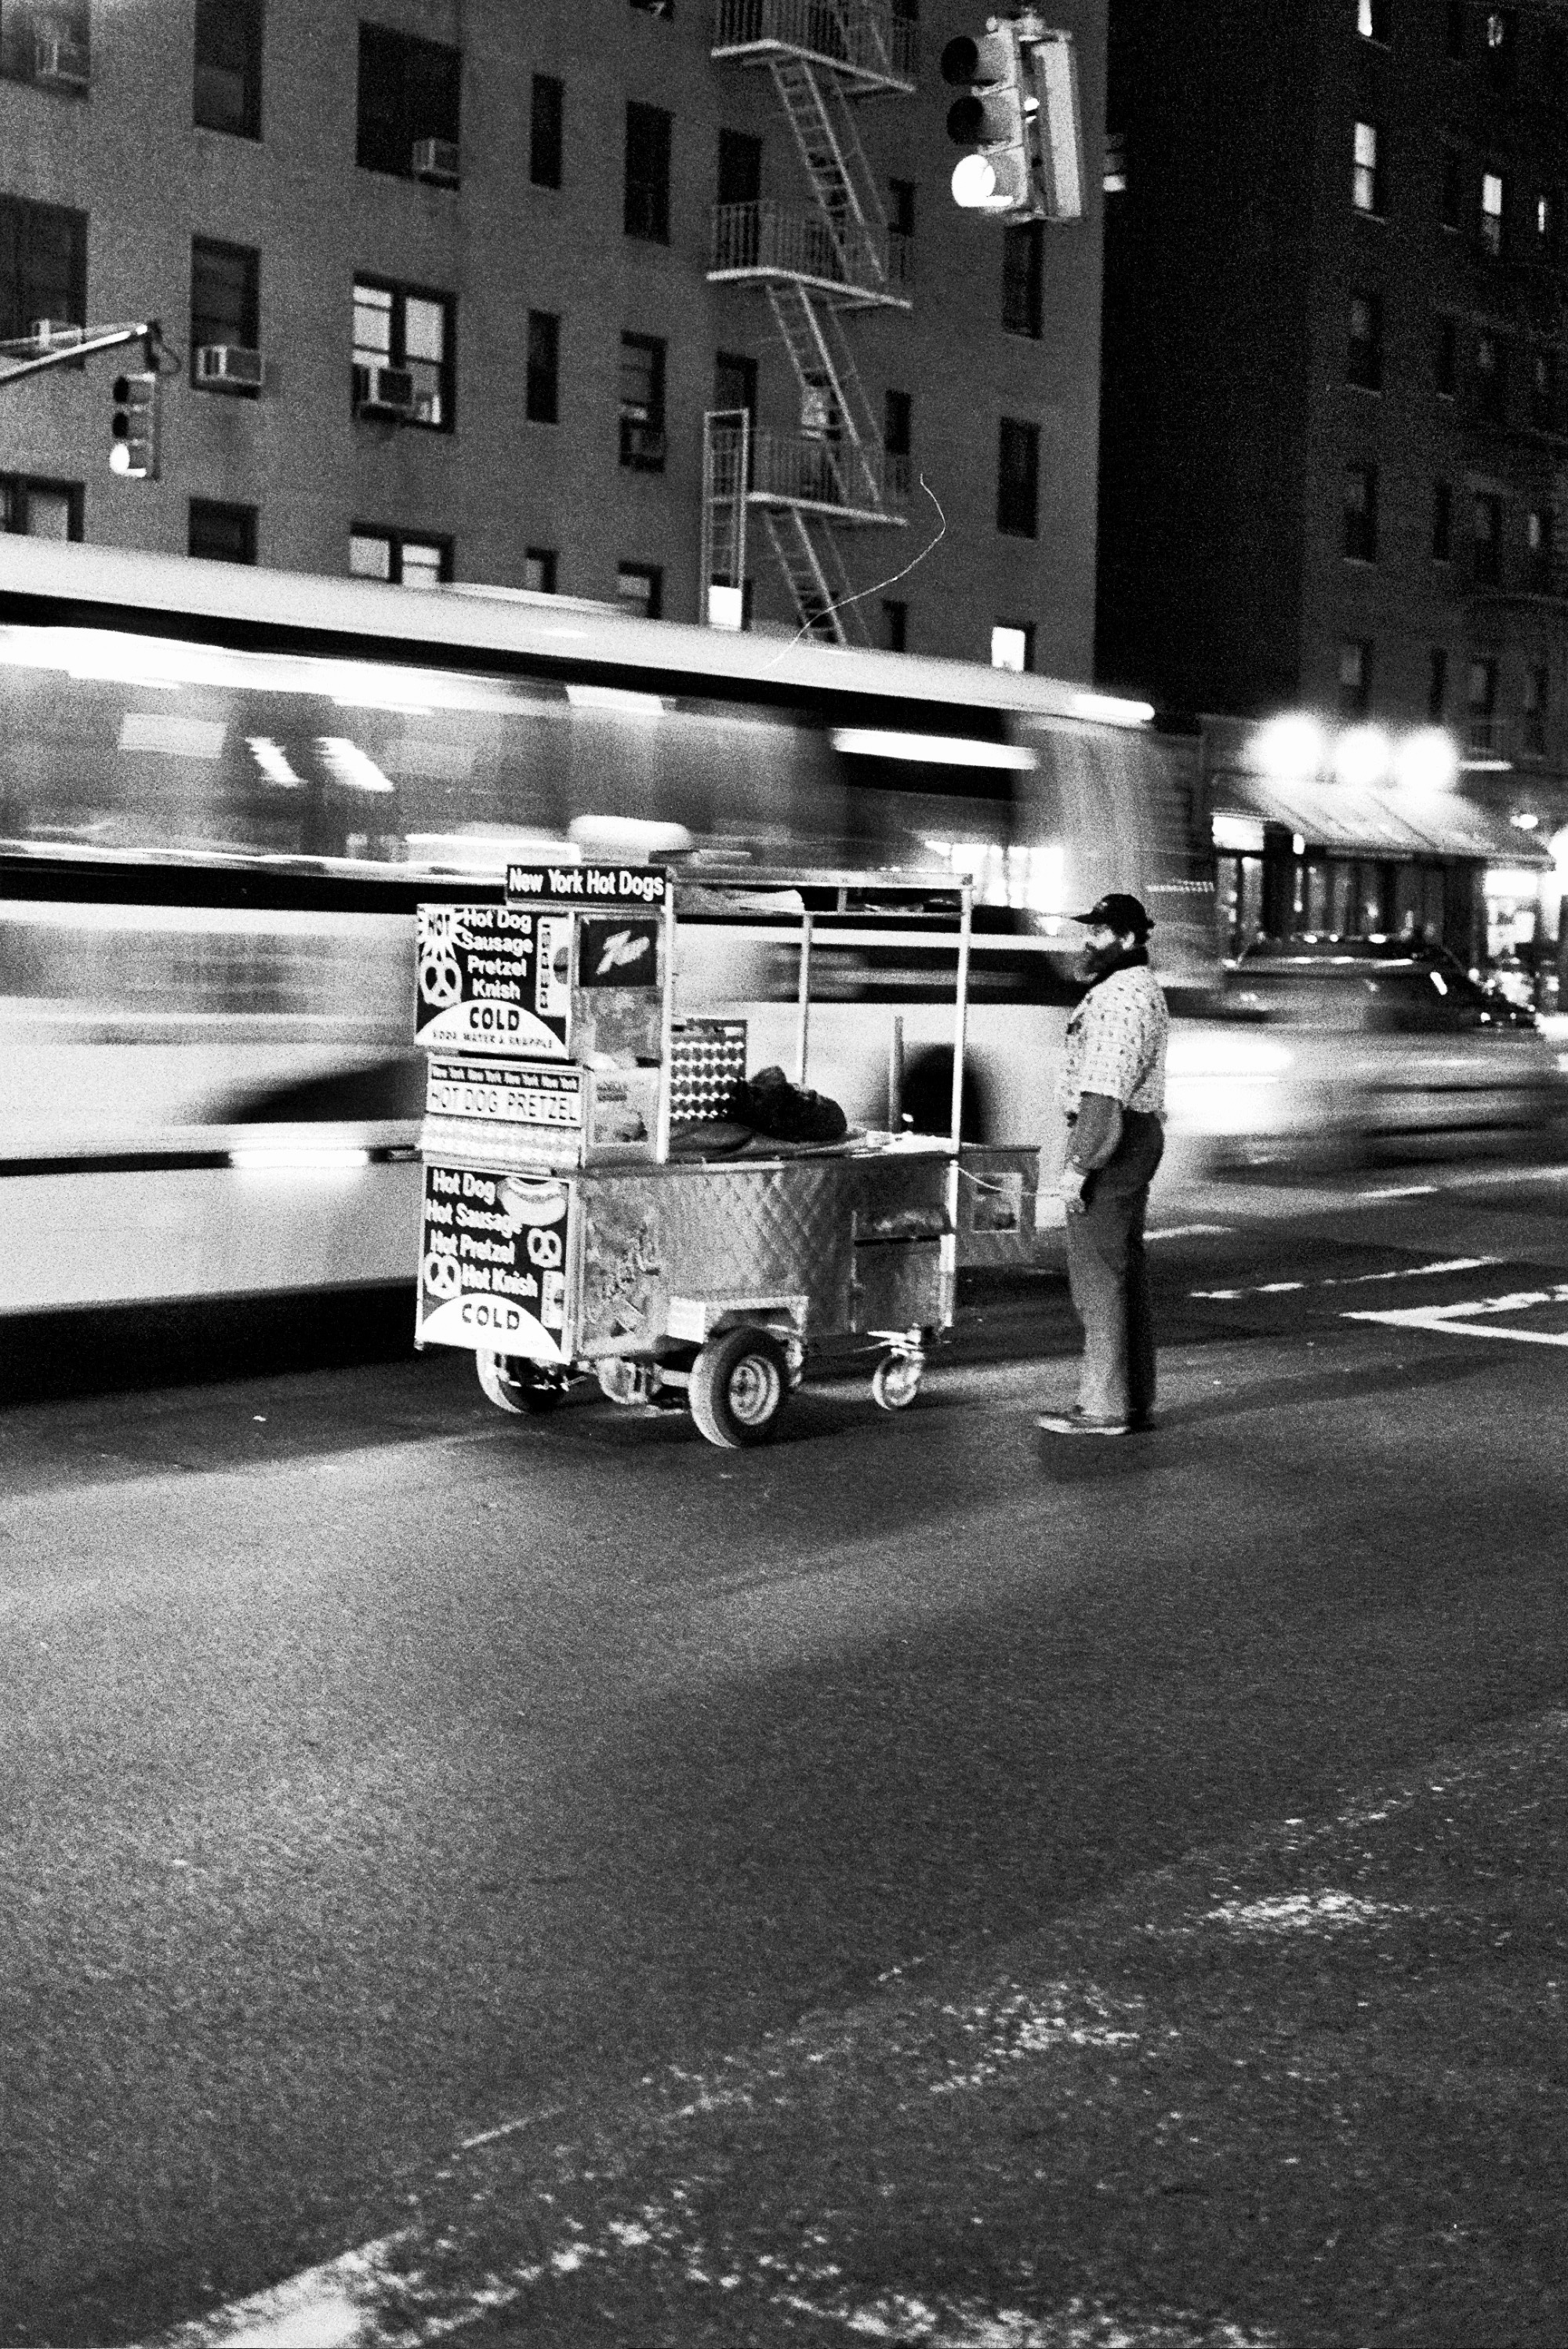 Vendor, New York, NY